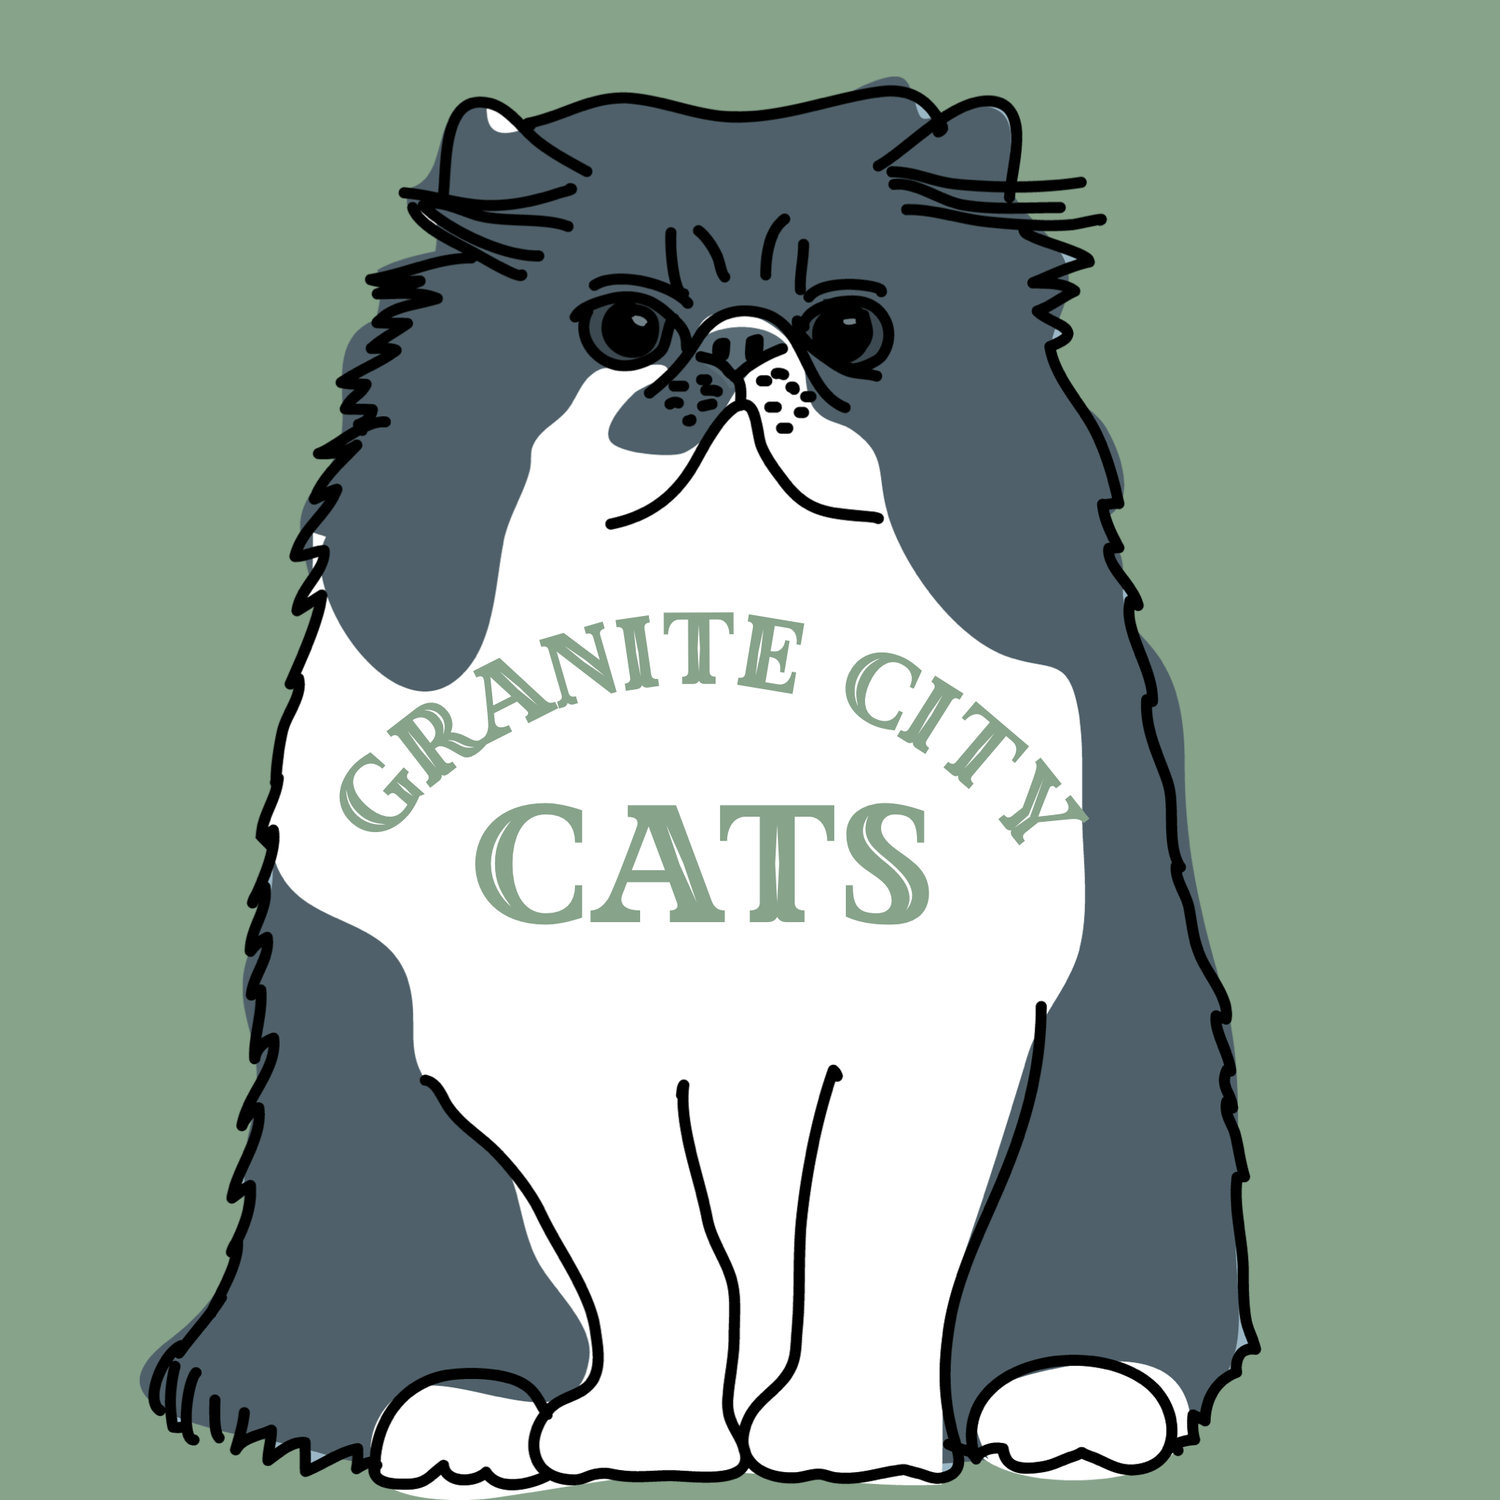 Granite City Cats